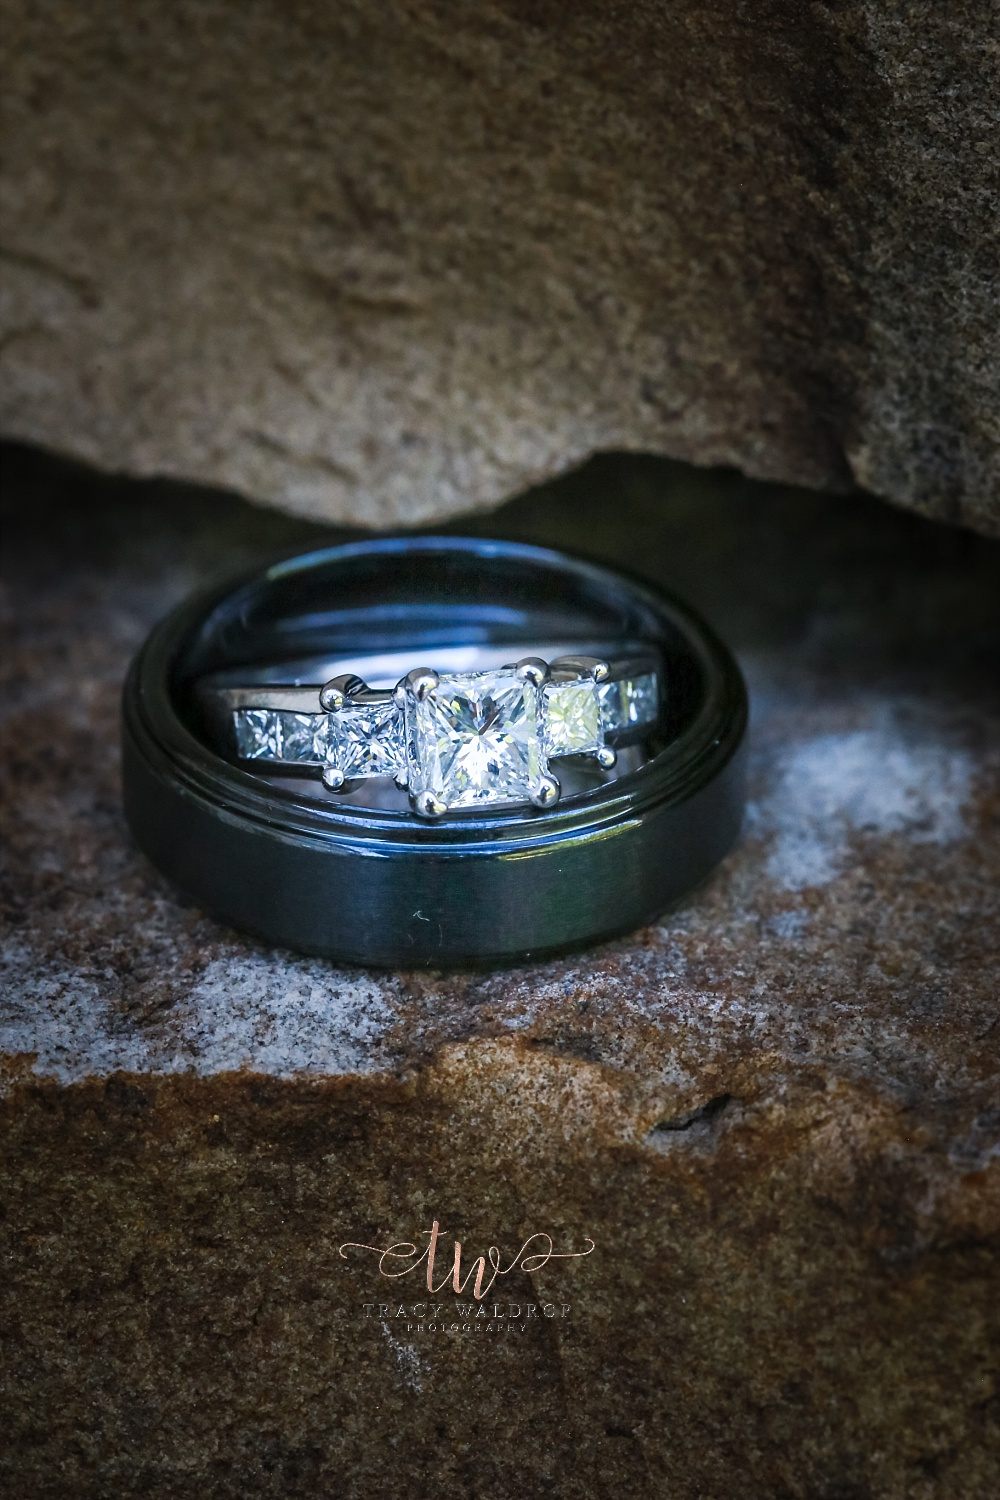 Wedding ring and band